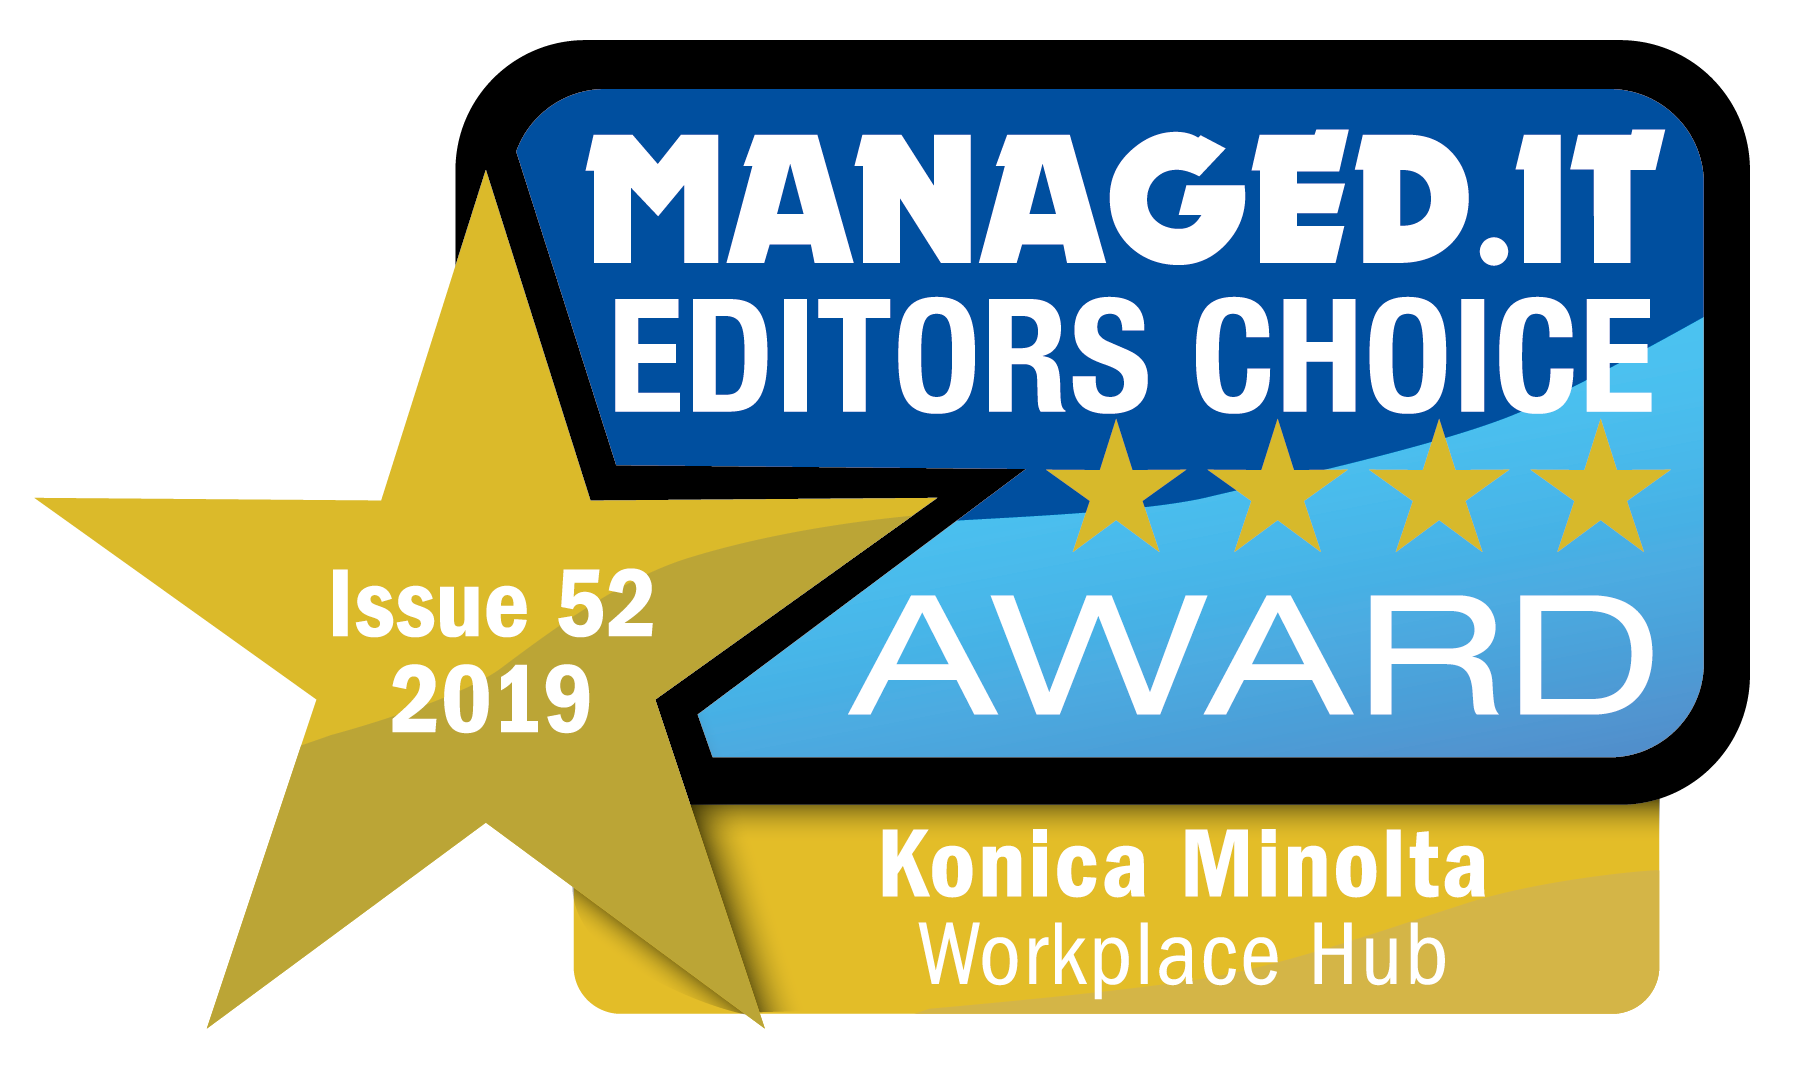 Managed.IT Editors Choice Award